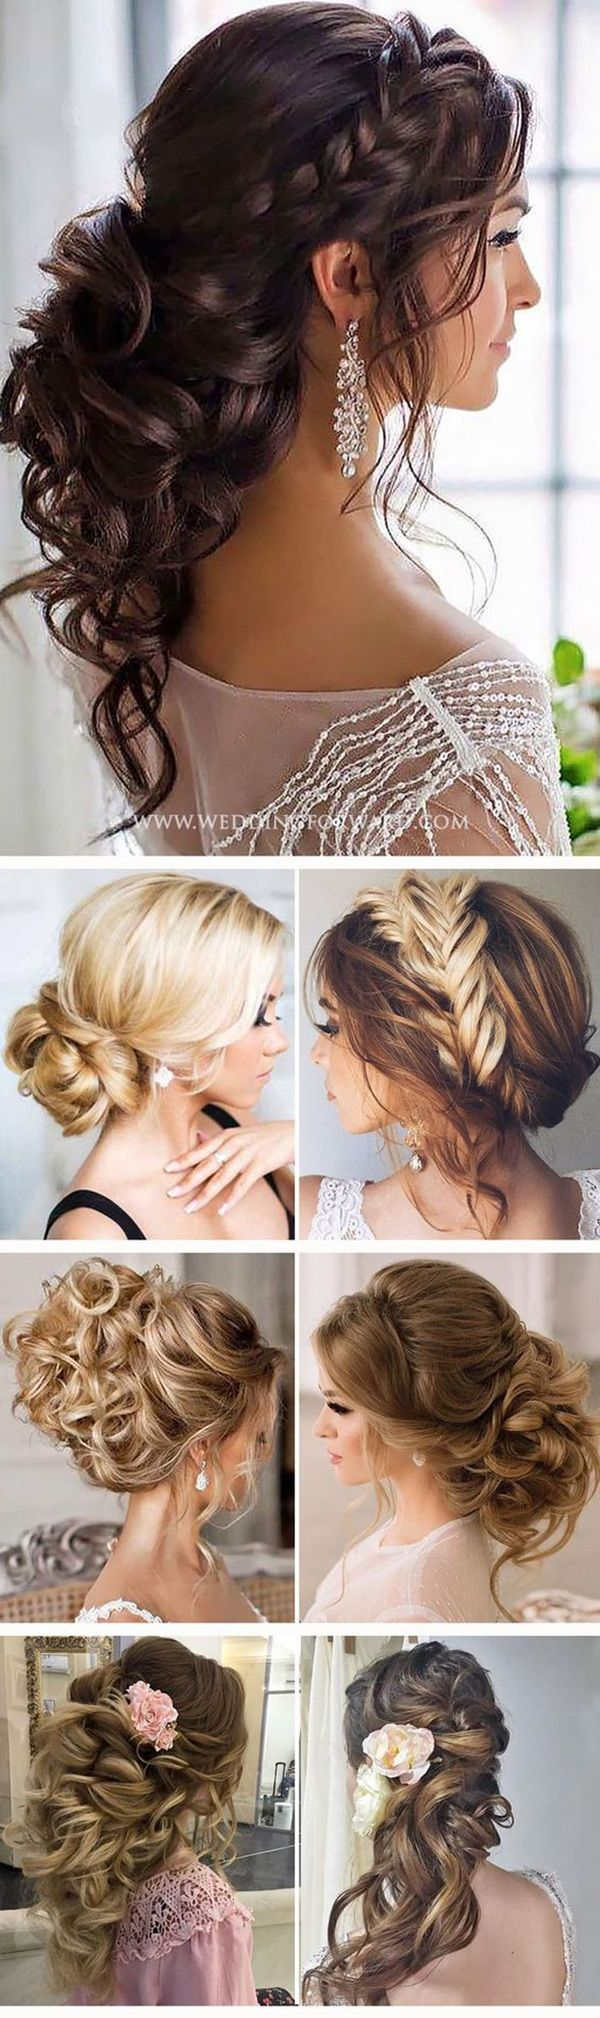 best 25+ bridesmaid hair ideas on pinterest | formal hair